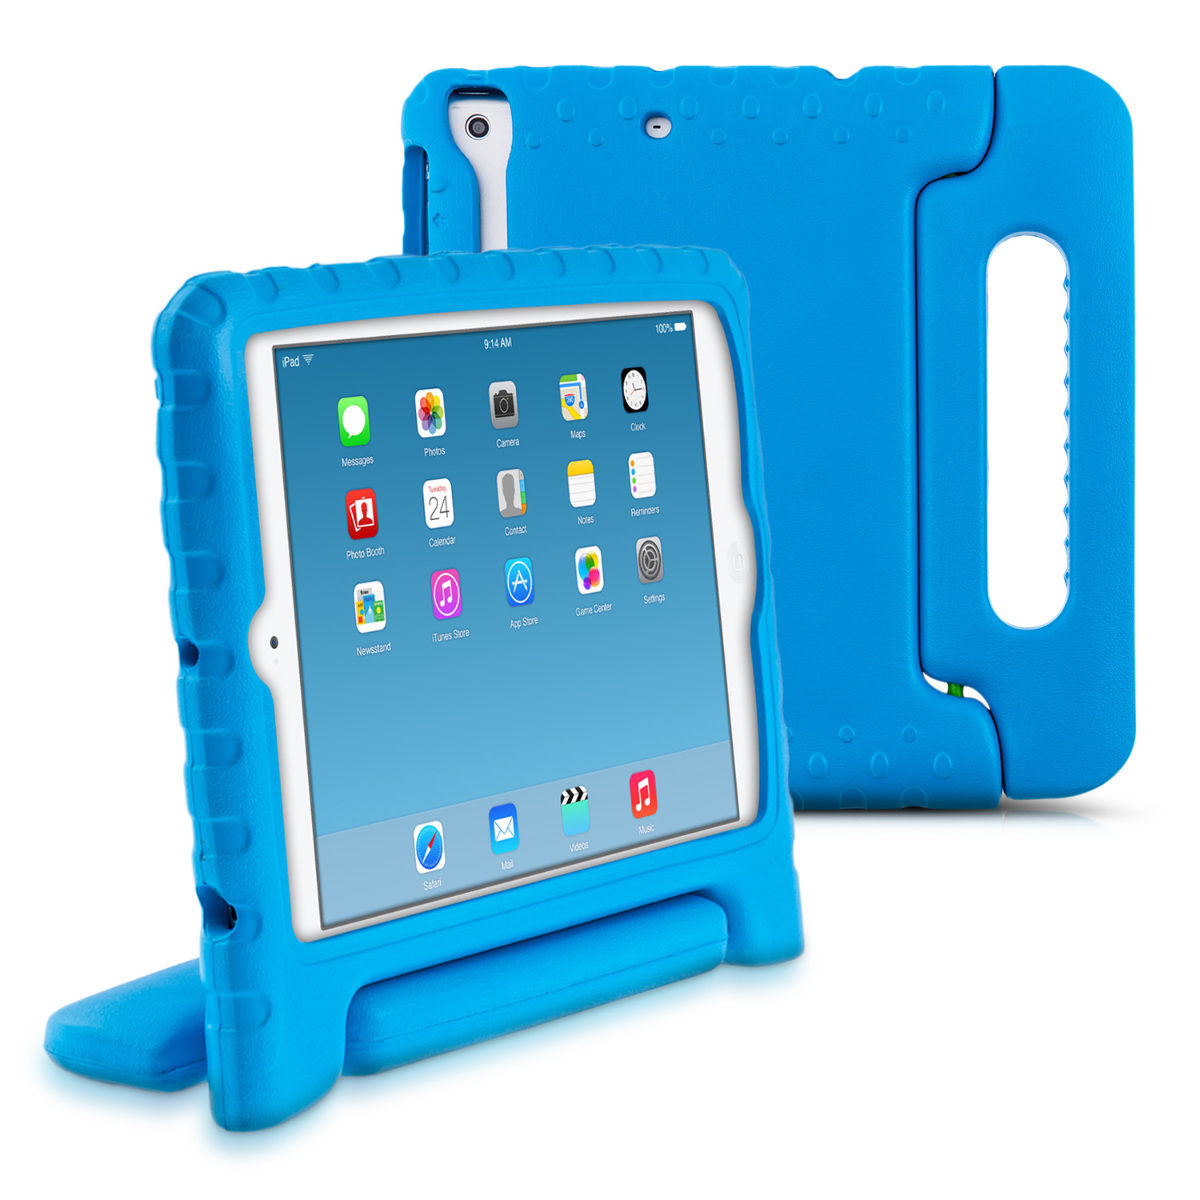 Capa Anti Impacto Ipad Mini 1 2 3 Apple Anti Choque Infantil com Alça